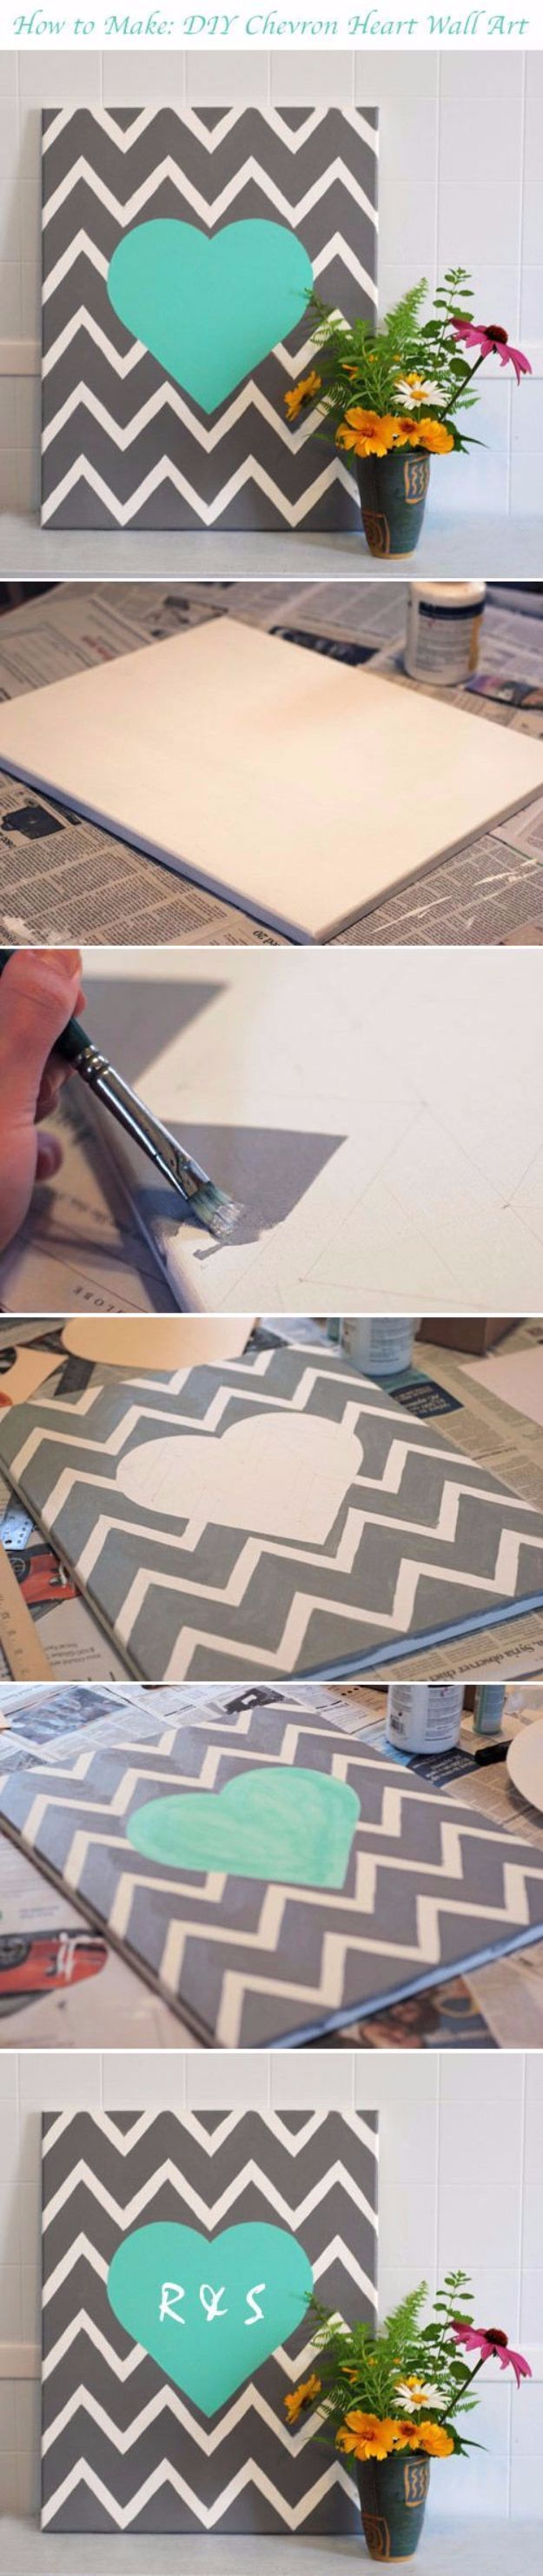 DIY Canvas Painting Ideas - DIY Chevron Heart - Cool and Easy Wall Art Ideas You Can Make On A Budget - Creative Arts and Crafts Ideas for Adults and Teens - Awesome Art for Living Room, Bedroom, Dorm and Apartment Decorating http://diyjoy.com/diy-canvas-painting #artsandcraftsgifts,